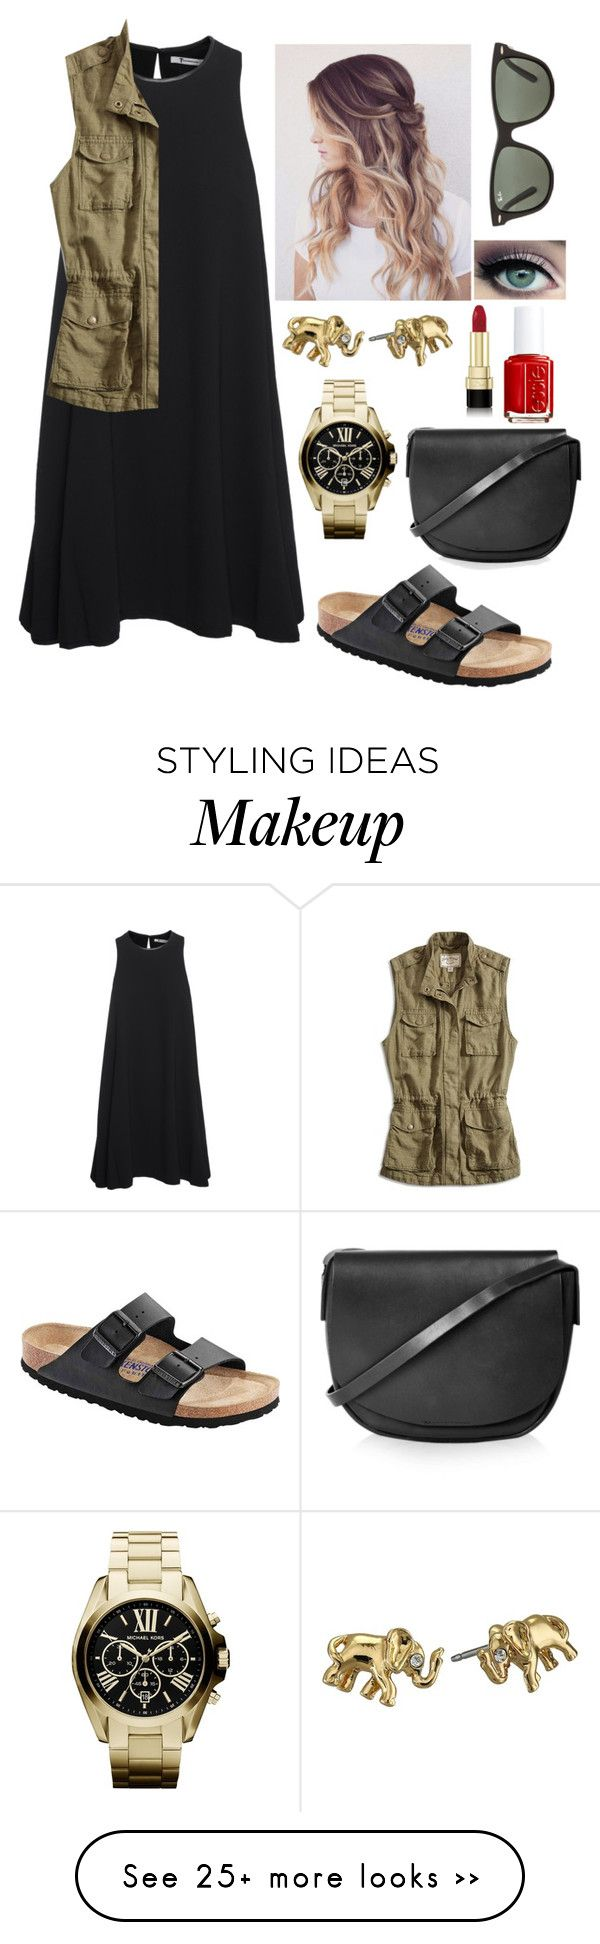 """//the hills have eyes\\"" by mackenziebarnett0719 on Polyvore featuring moda, T By Alexander Wang, Lucky Brand, Birkenstock, Ray-Ban, Kate Spade, Michael Kors, Topshop, Dolce&Gabbana e Essie"